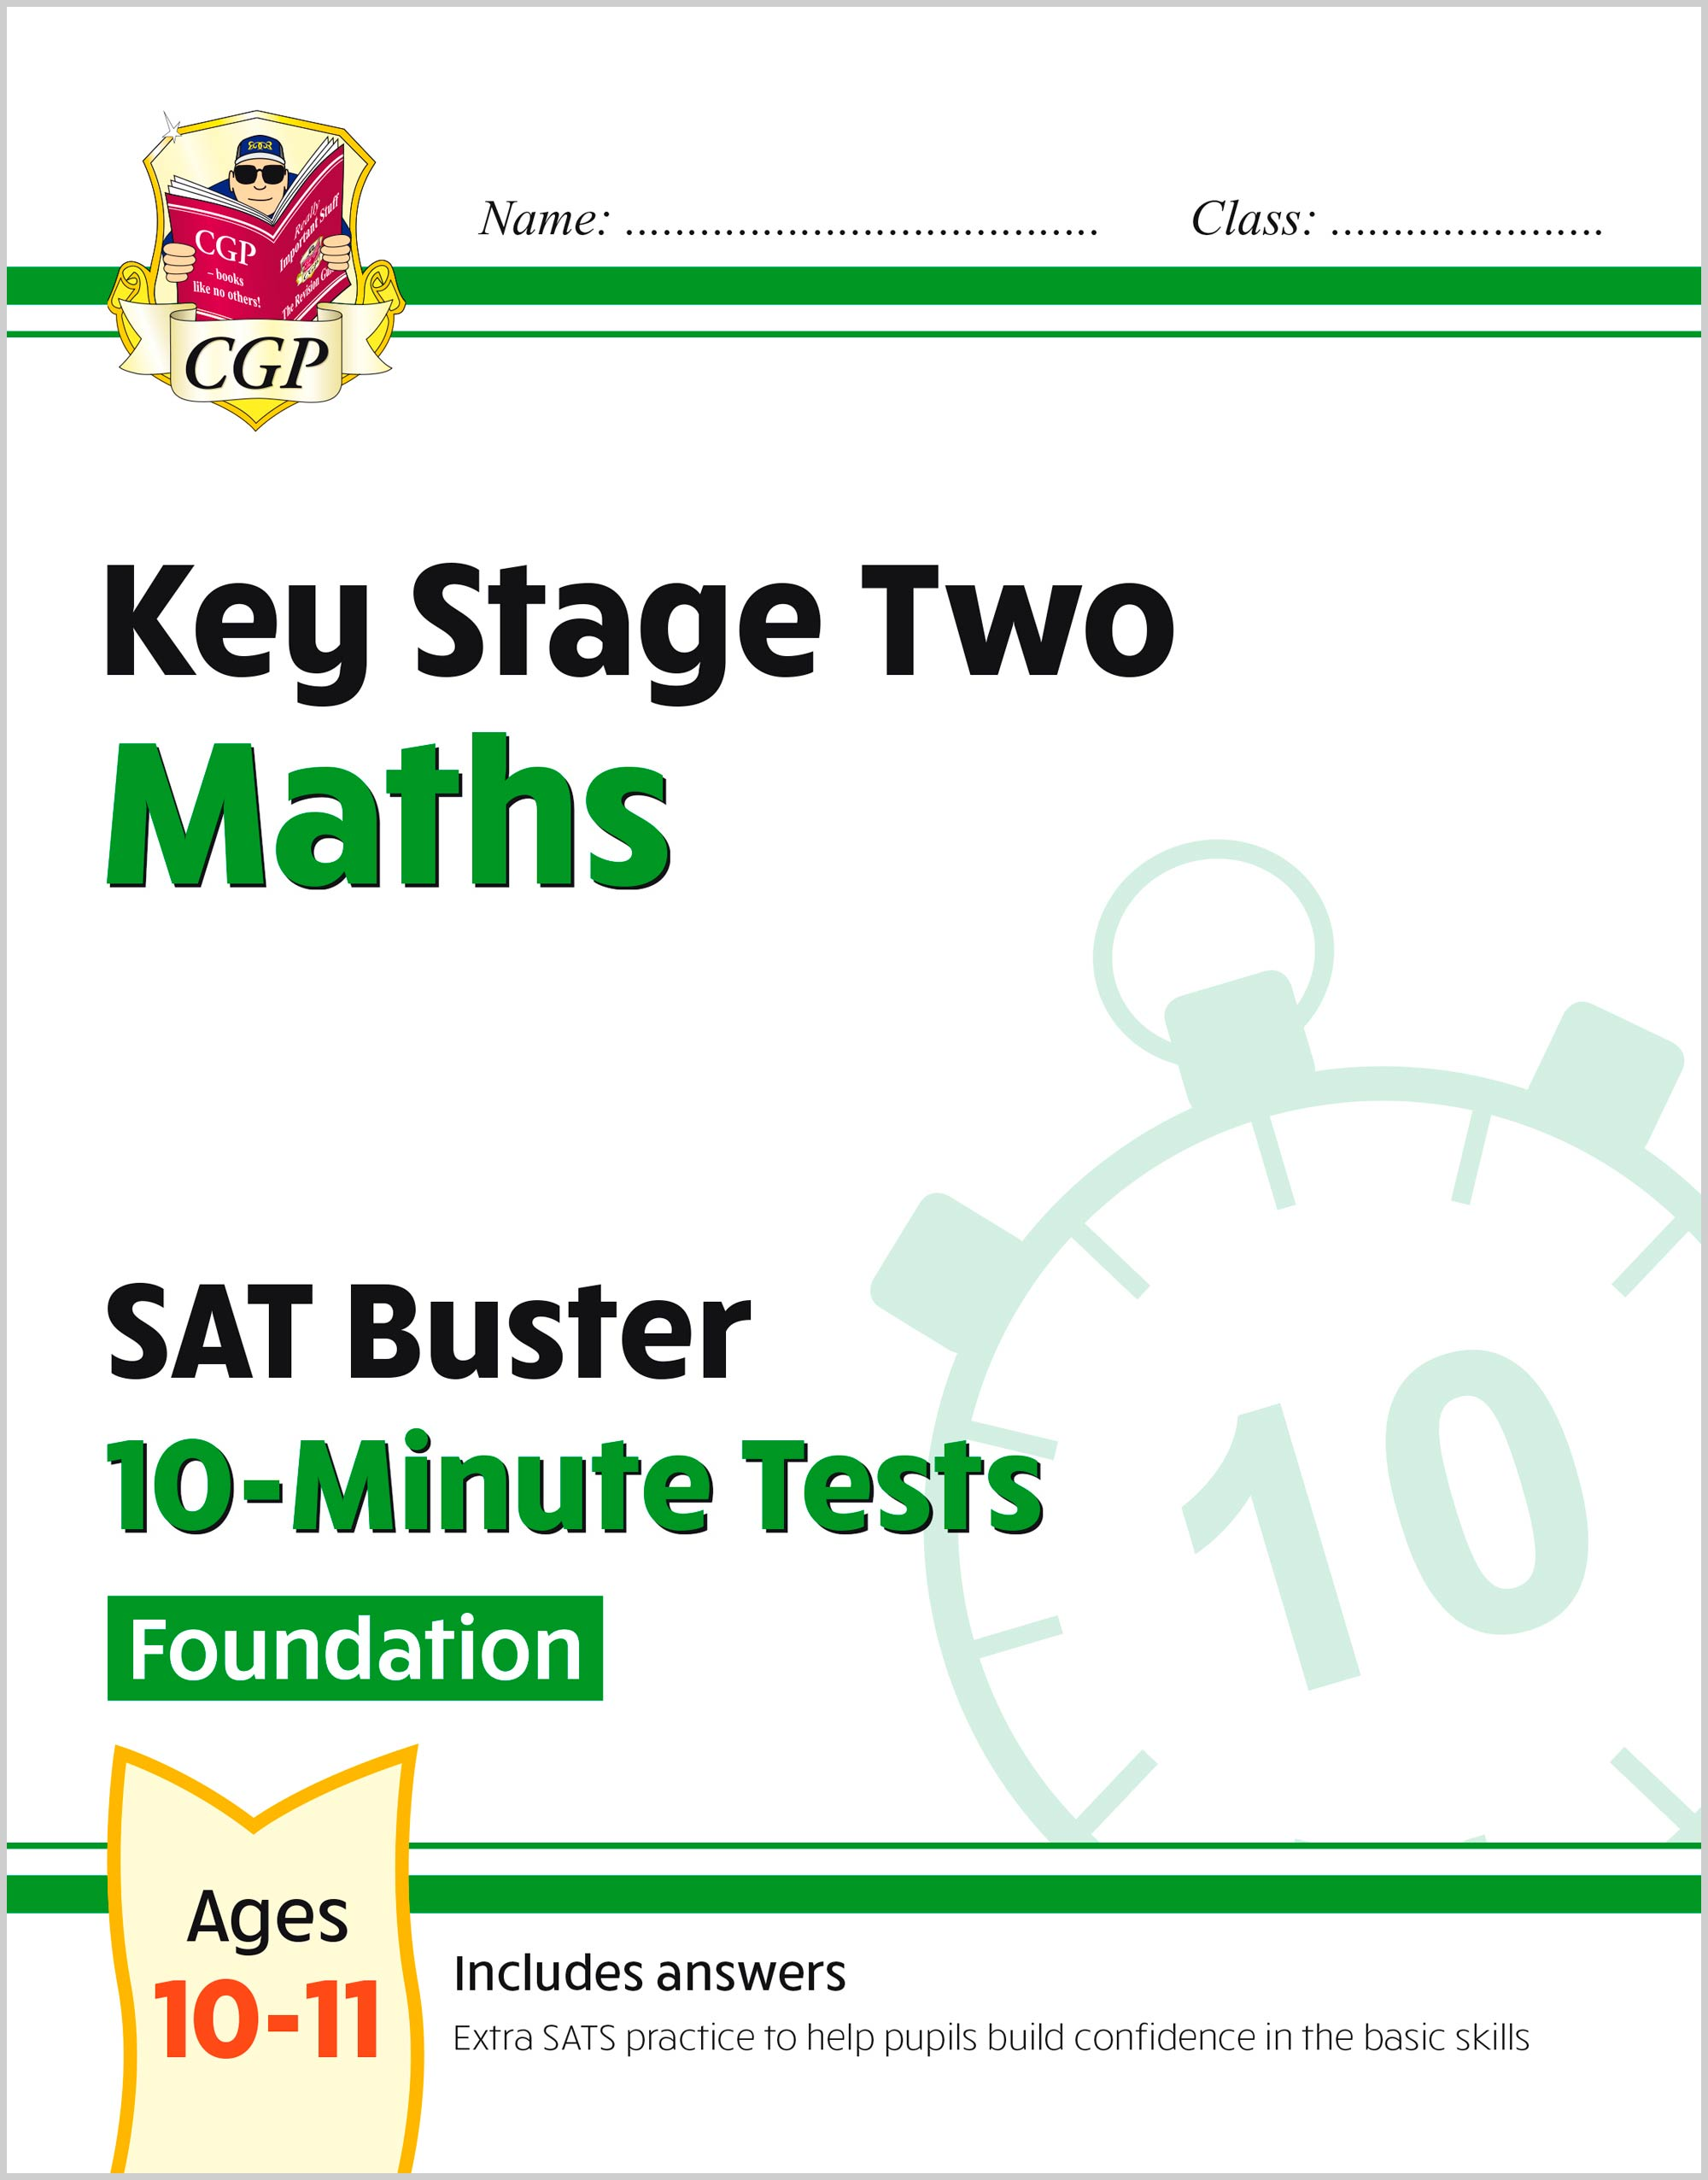 MLFXP22 - New KS2 Maths SAT Buster 10-Minute Tests - Foundation (for the 2020 tests)